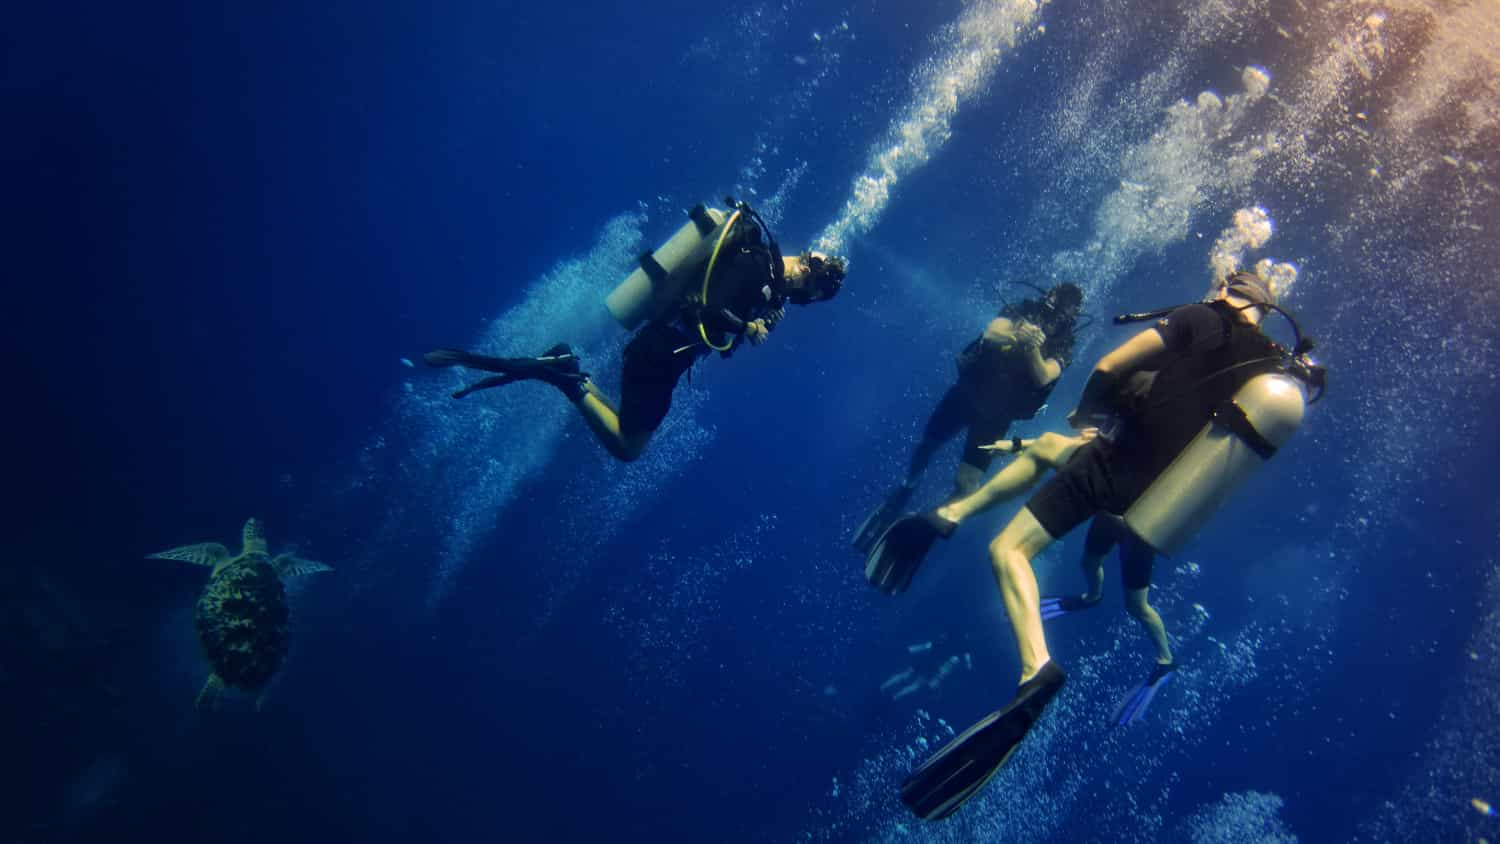 PADI Courses - From Beginner to Instructor and Technical Diving